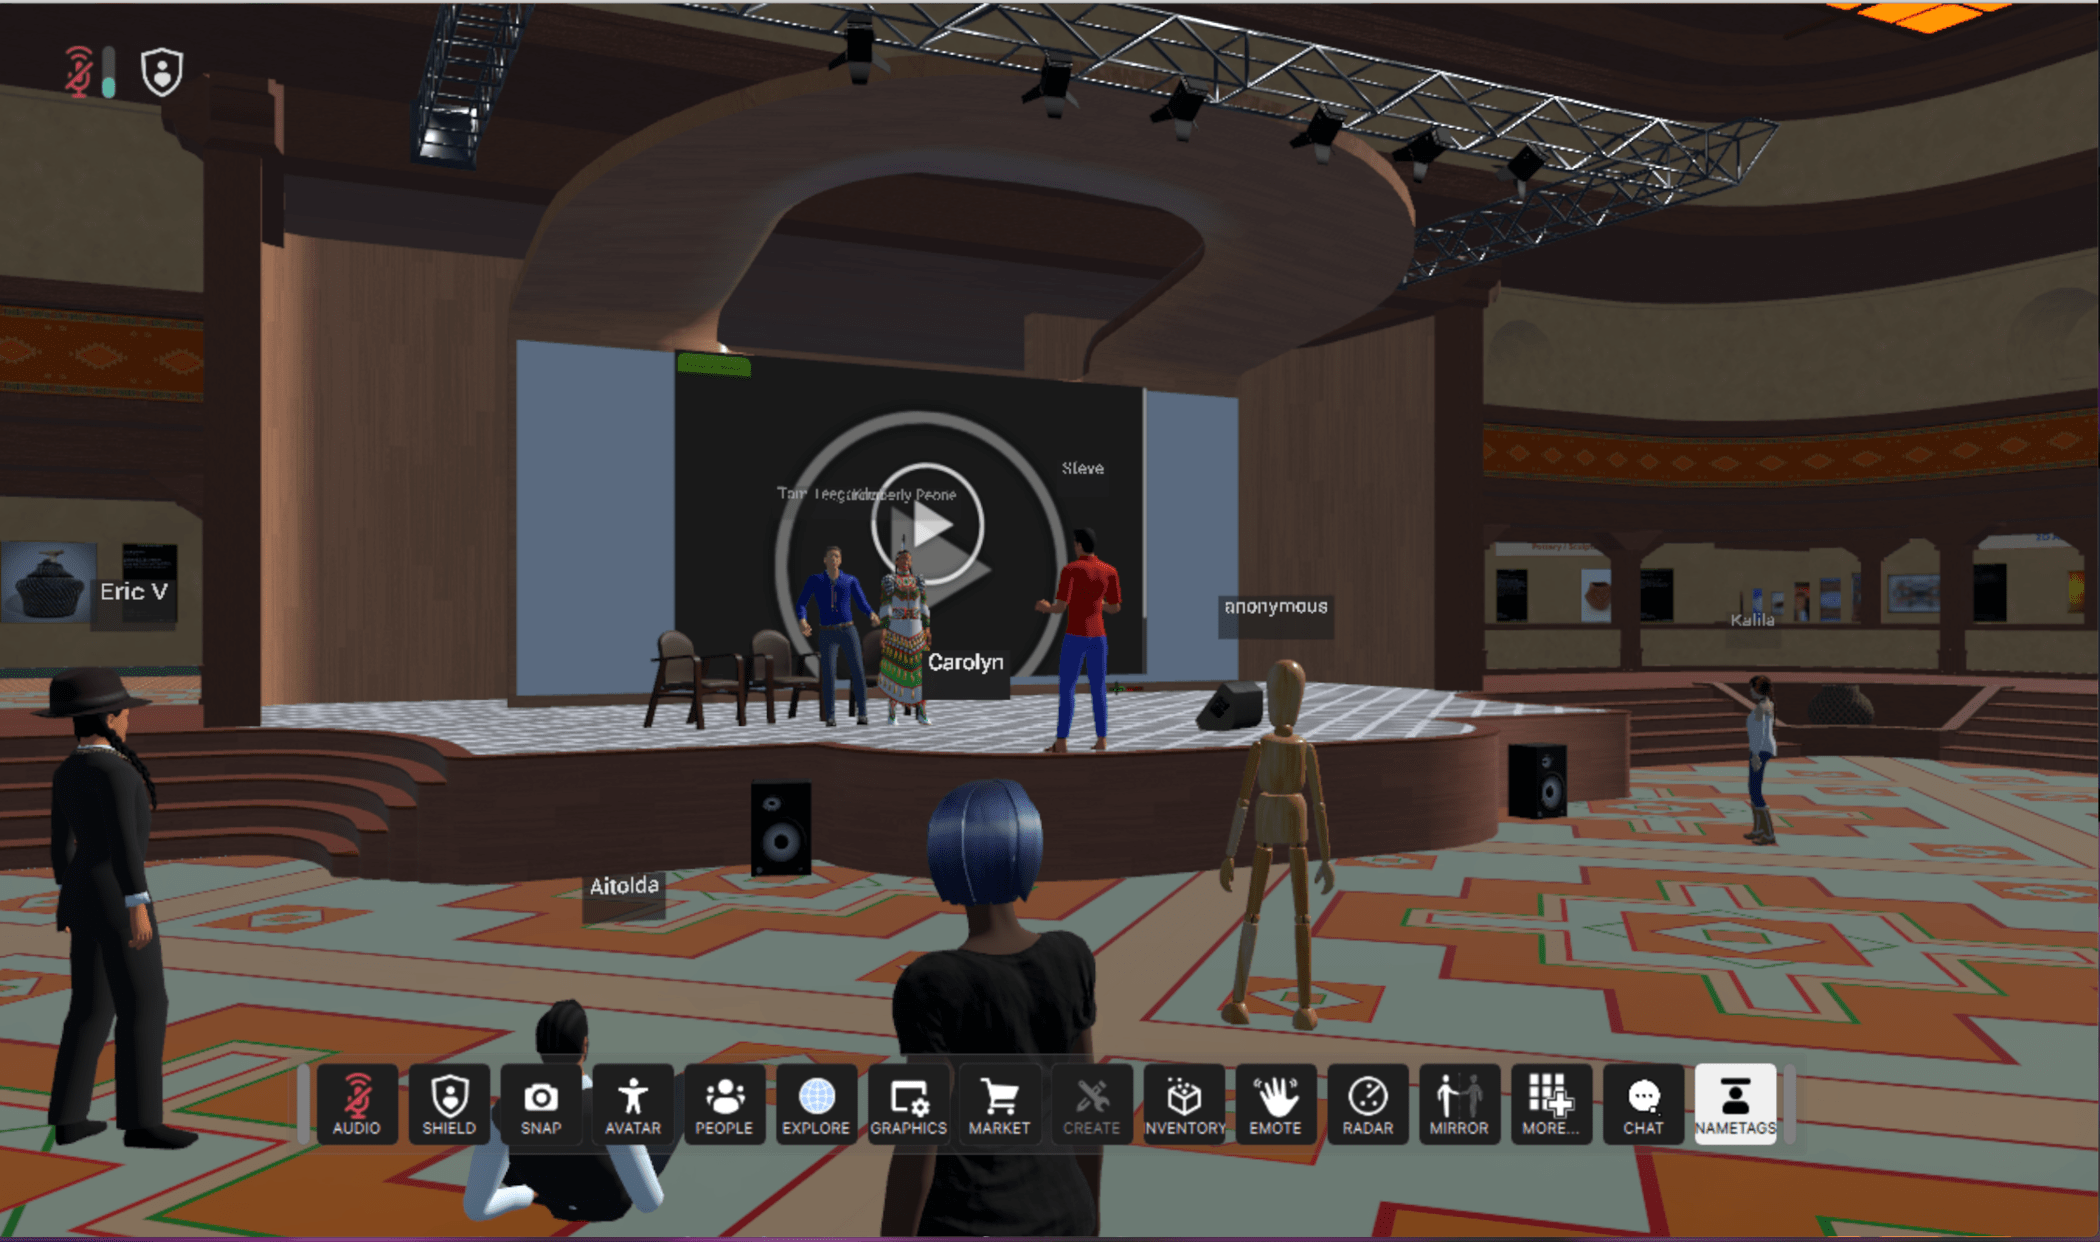 Listening to a speaker on the stage.